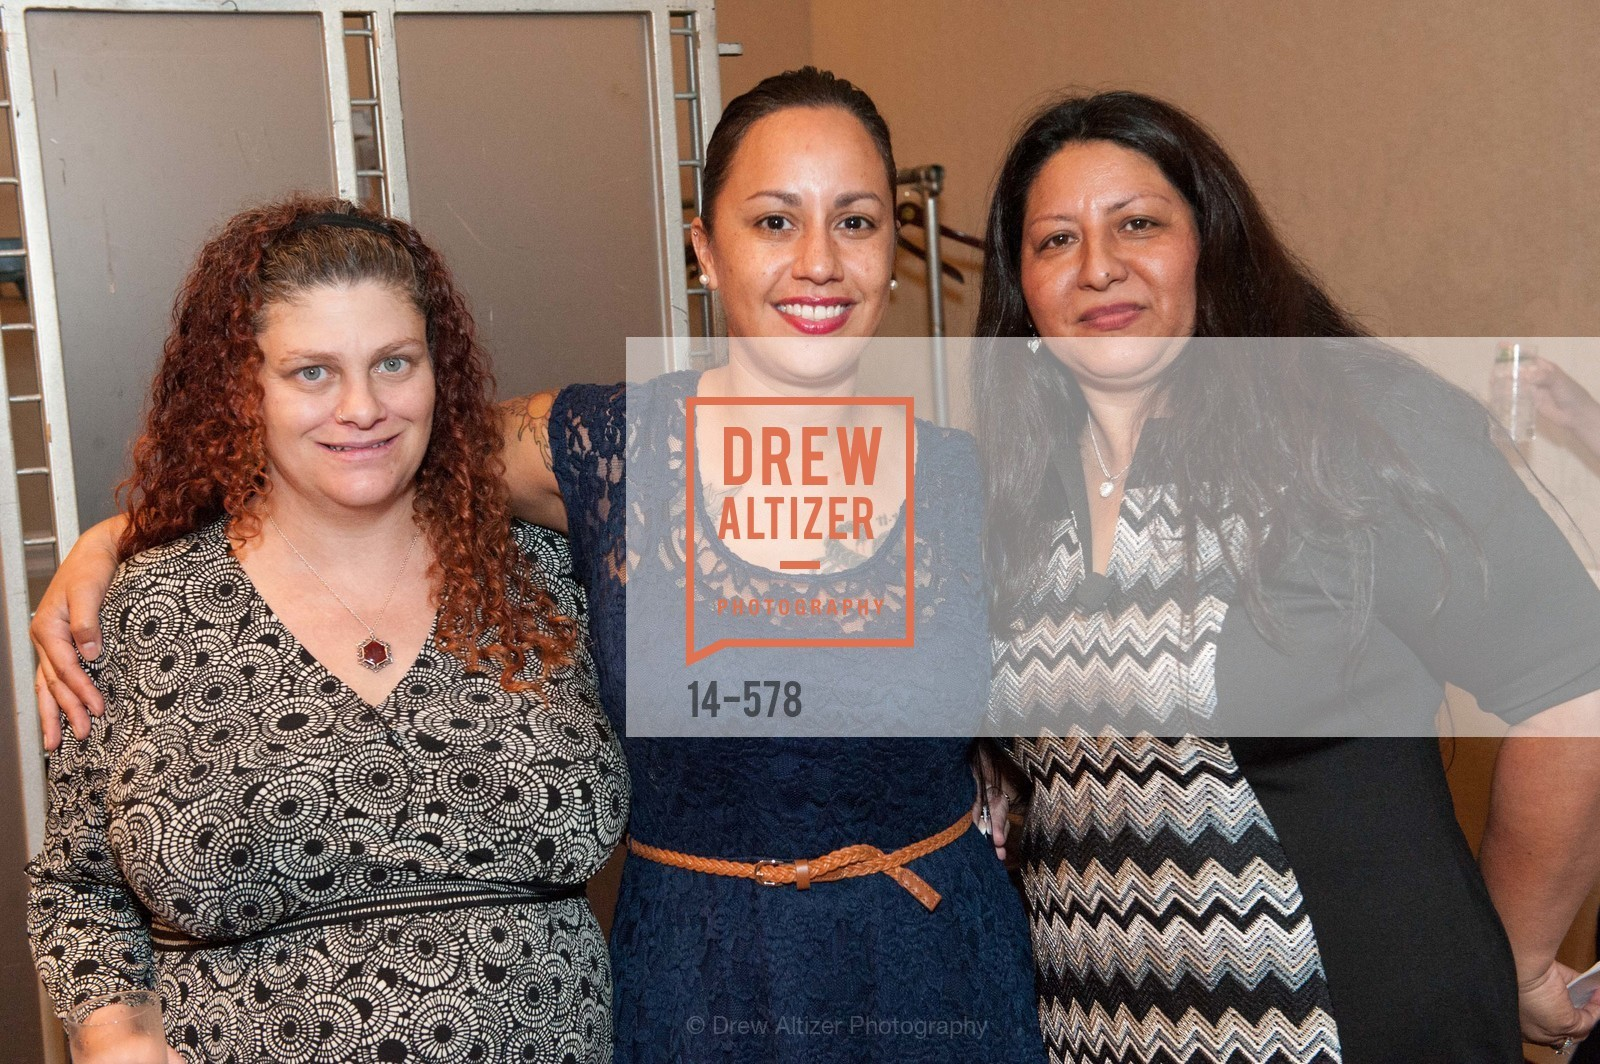 Cariie Hamilton, Lyn LaHuerta, Sonya Batres, HOMELESS PRENATAL Annual Luncheon 2014, US, September 30th, 2014,Drew Altizer, Drew Altizer Photography, full-service agency, private events, San Francisco photographer, photographer california